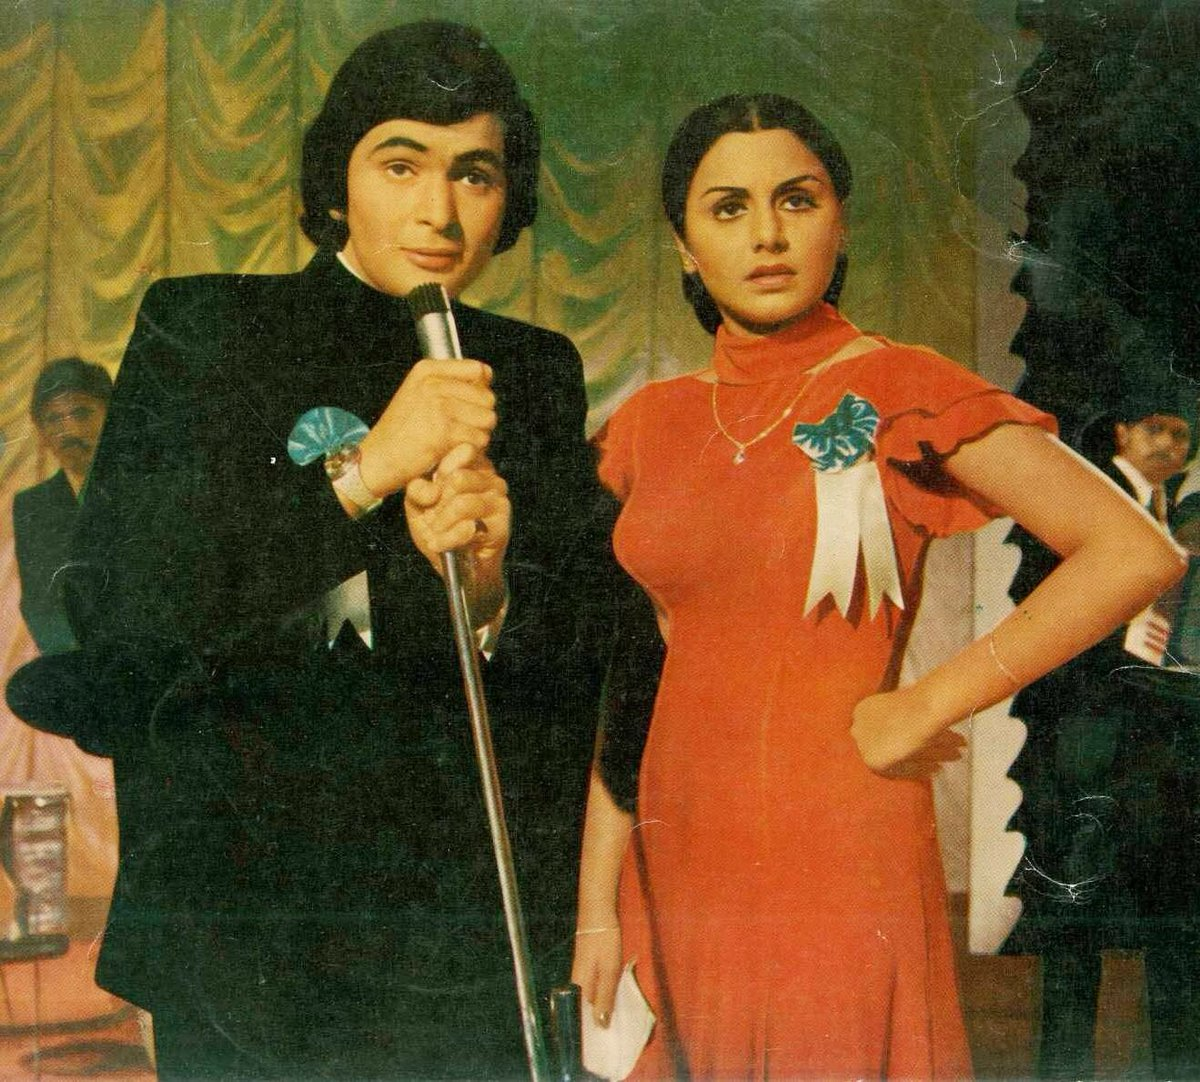 Rishi Kapoor and Neetu Singh in Khel Khel Mein (1975)